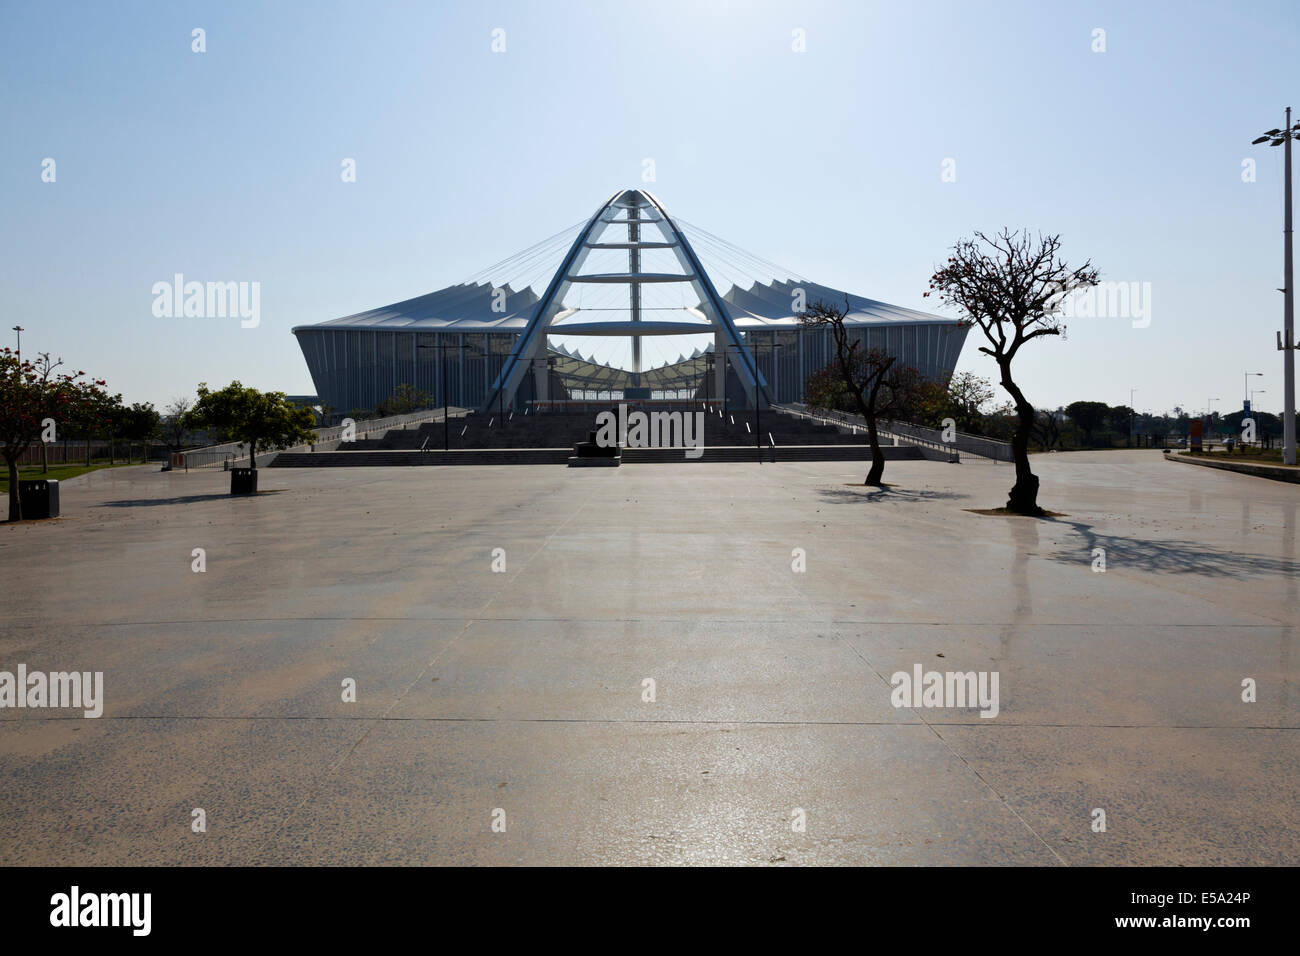 Durban, South Africa. Moses Madhiba 2010 world cup soccer Stadium back lit by the early morning sun. - Stock Image